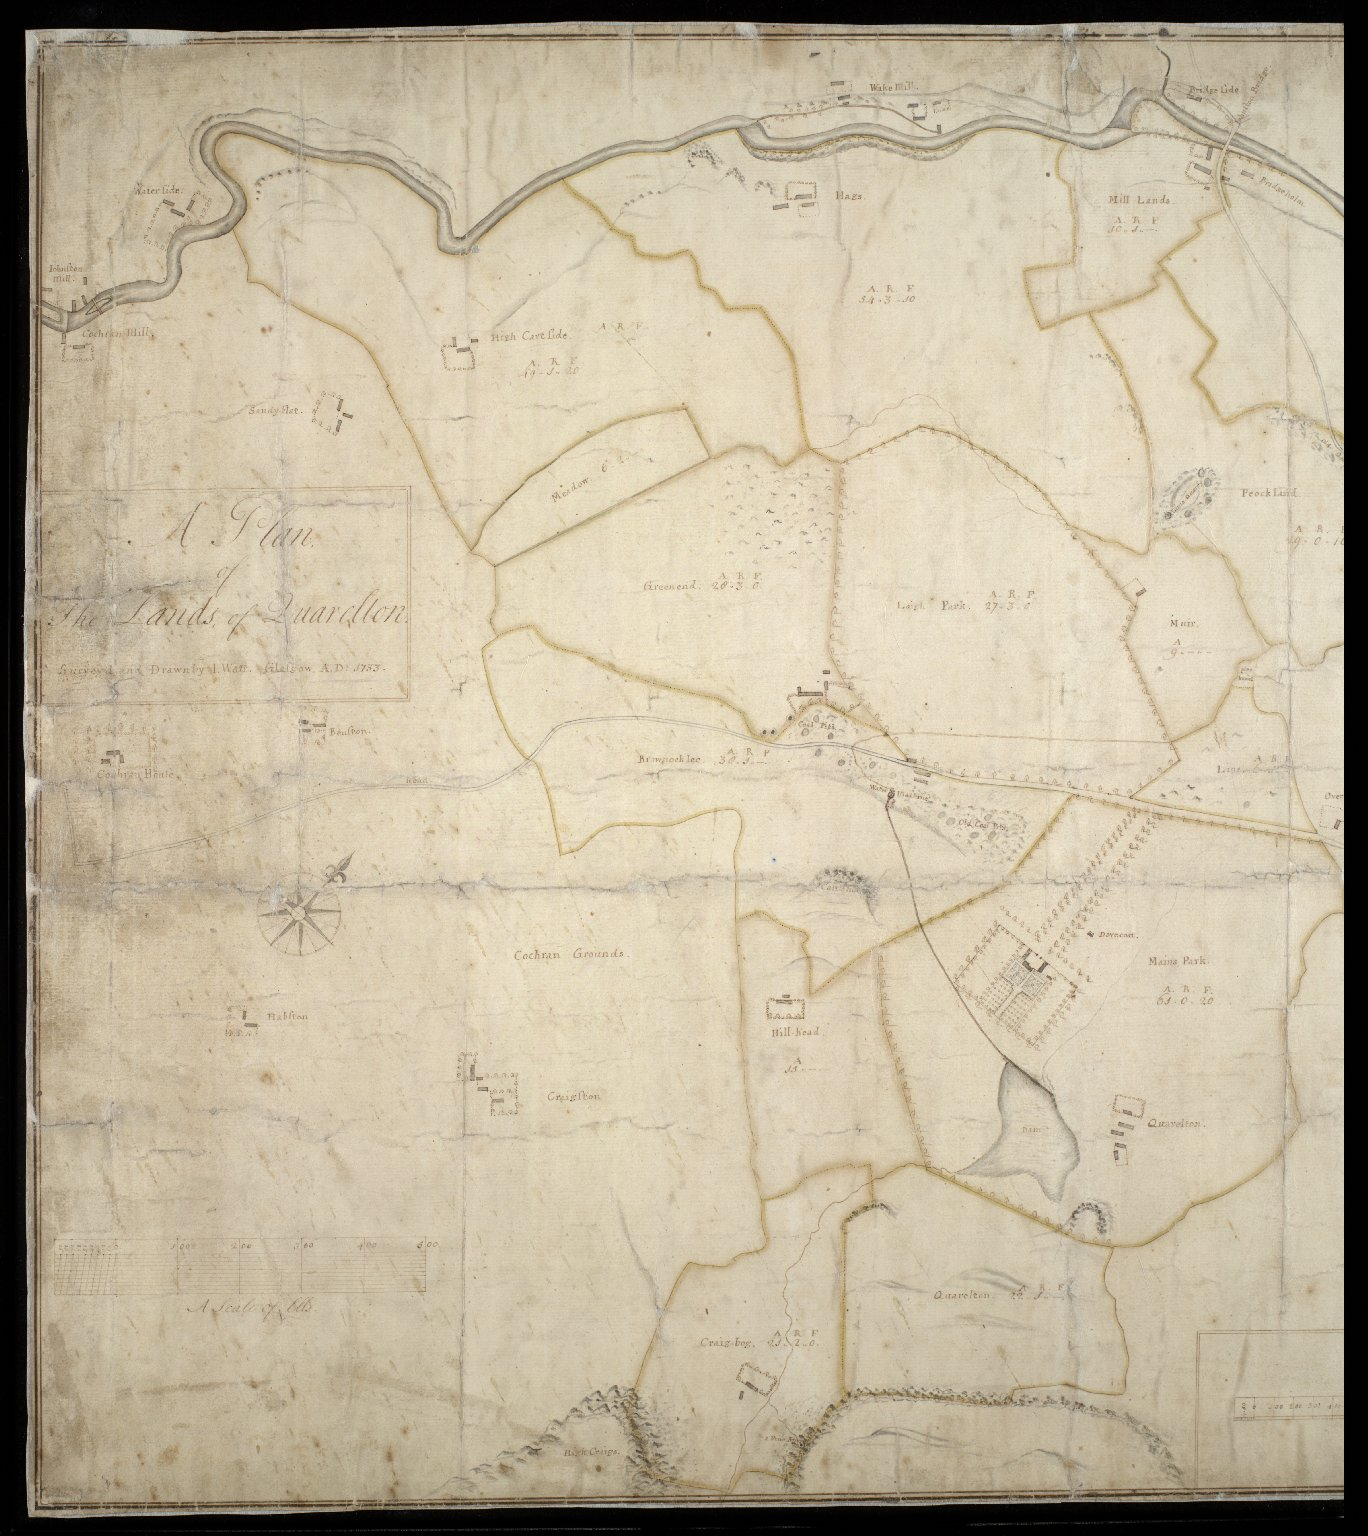 A Plan of the Lands of Quarelton [1 of 2]